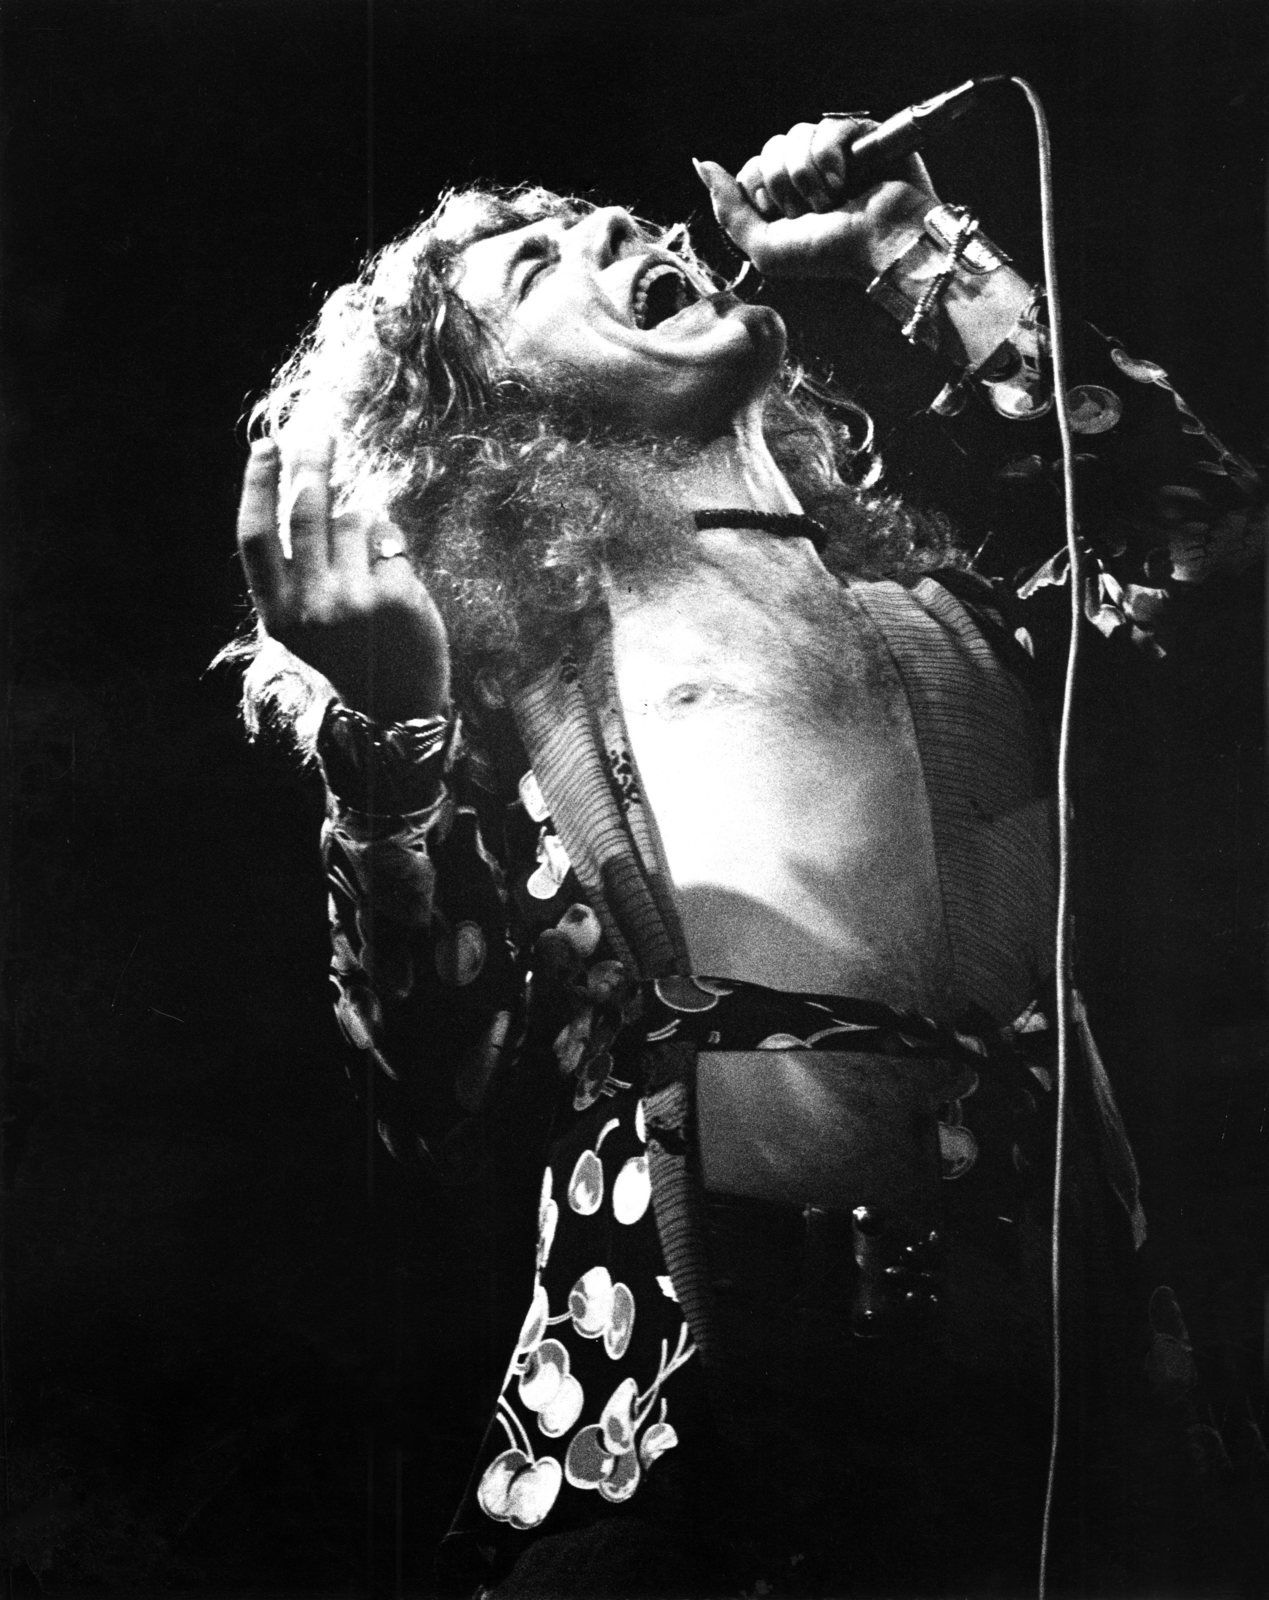 Robert Plant - on stage in Germany in March 1973 - Getty image